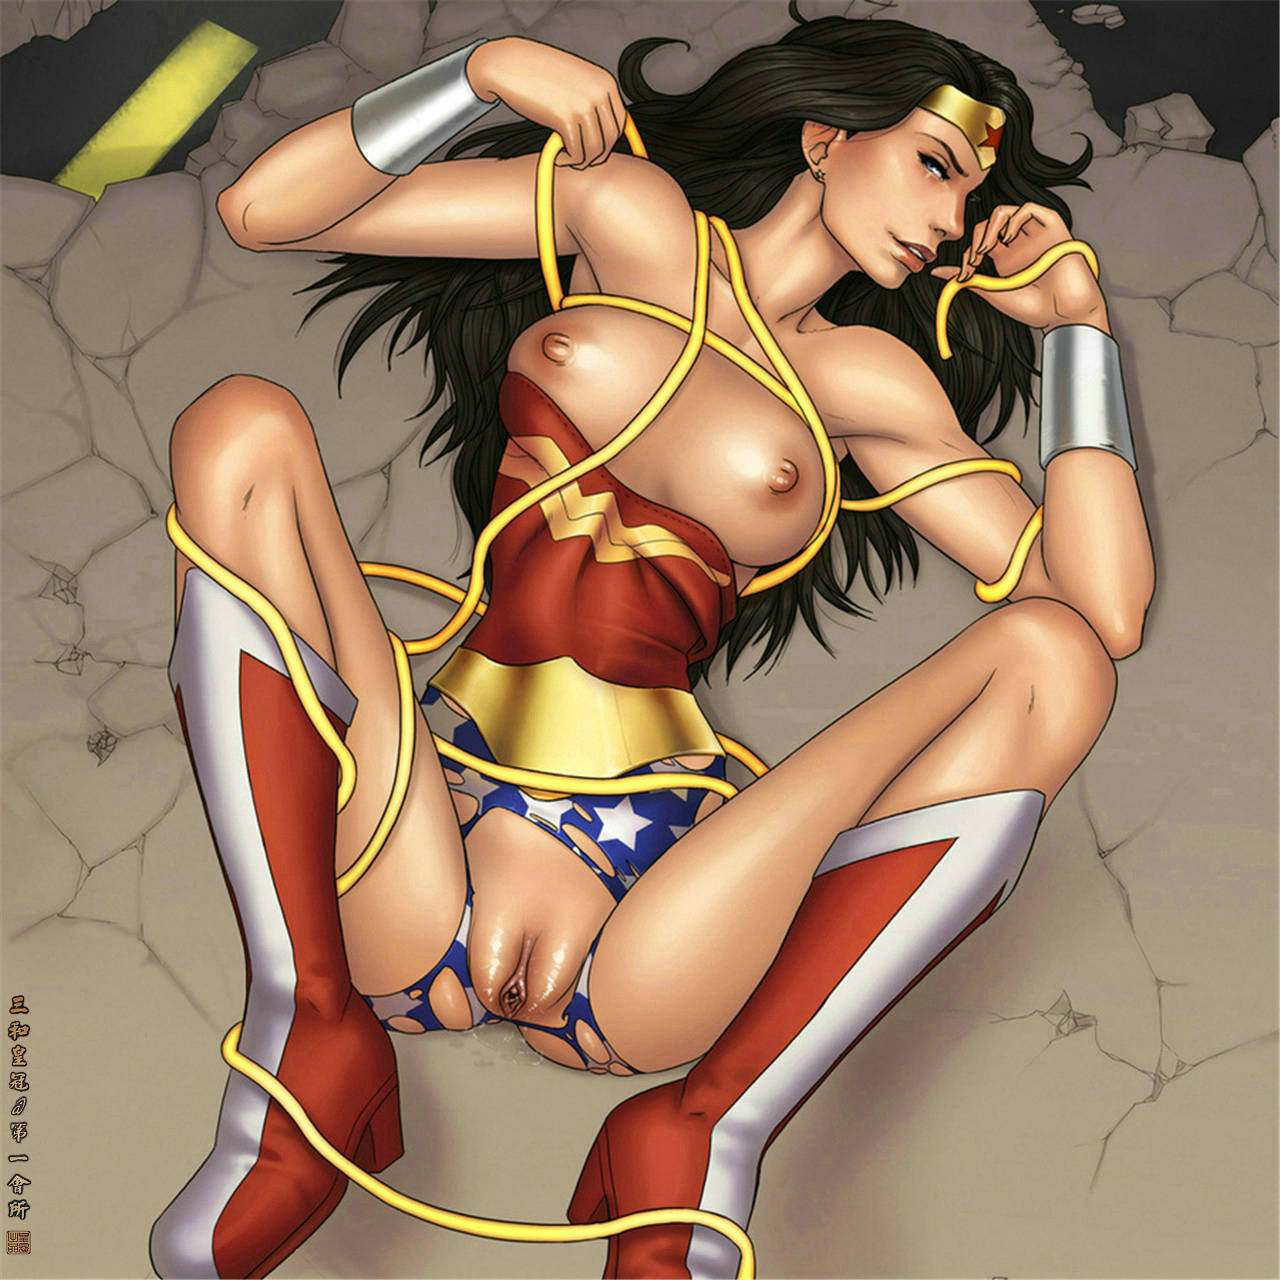 Hot dc universe xxx hd erotic pic